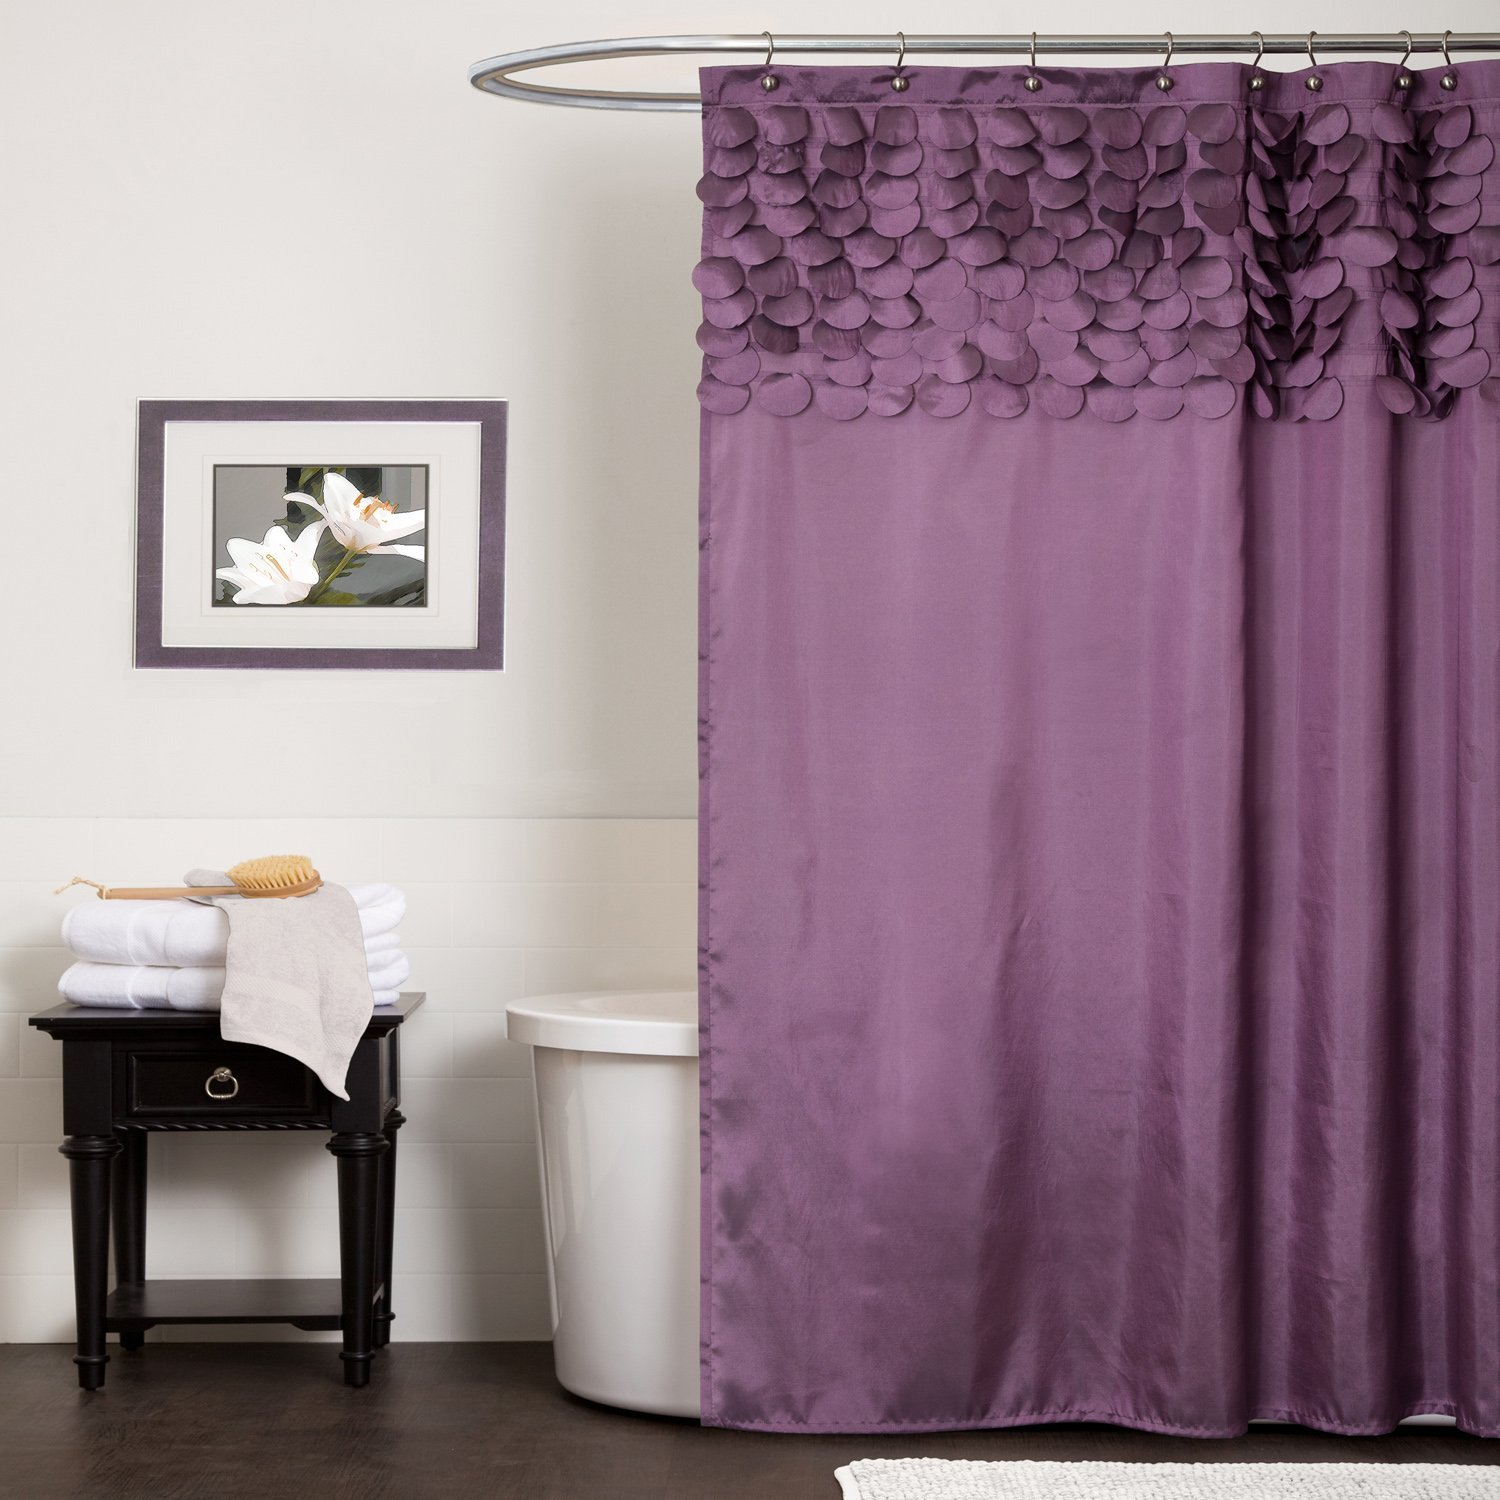 minimalist-home-interior-design-bathroom-ideas-for-small-space-with-fascinating-white-color-paint-and-beauty-purple-fabric-sliding-curtains-covering-elegant-bathtubs-as-well-as-designer-bathrooms-and